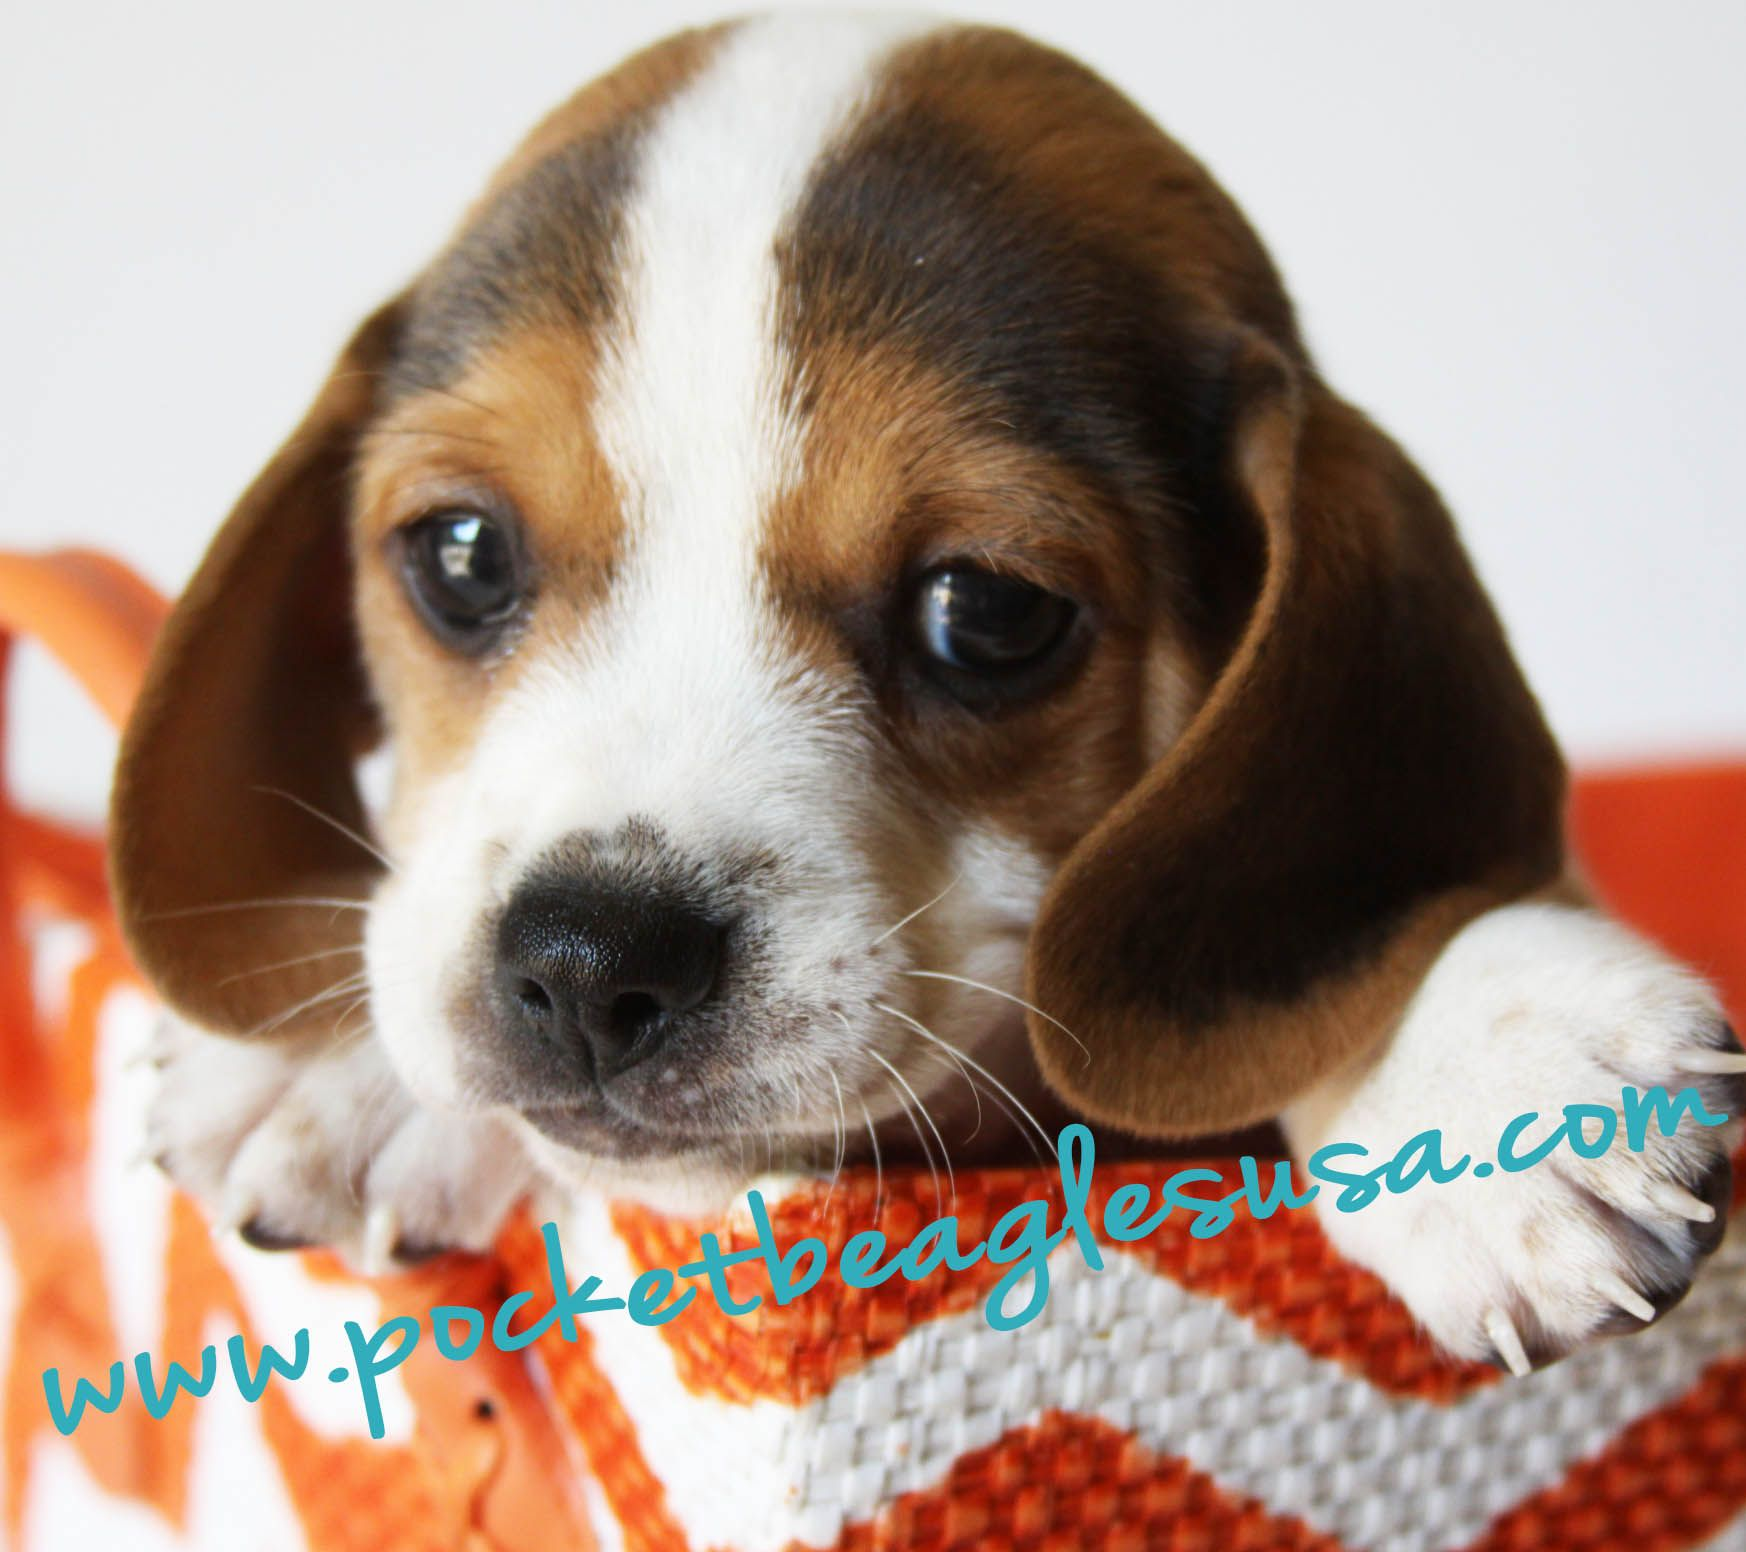 Small Beagle Pocket Beagle Purebred Beagle Small Dog Puppy Dog Cute Puppy Beagle Puppy Pocket Beagle Cute Puppies